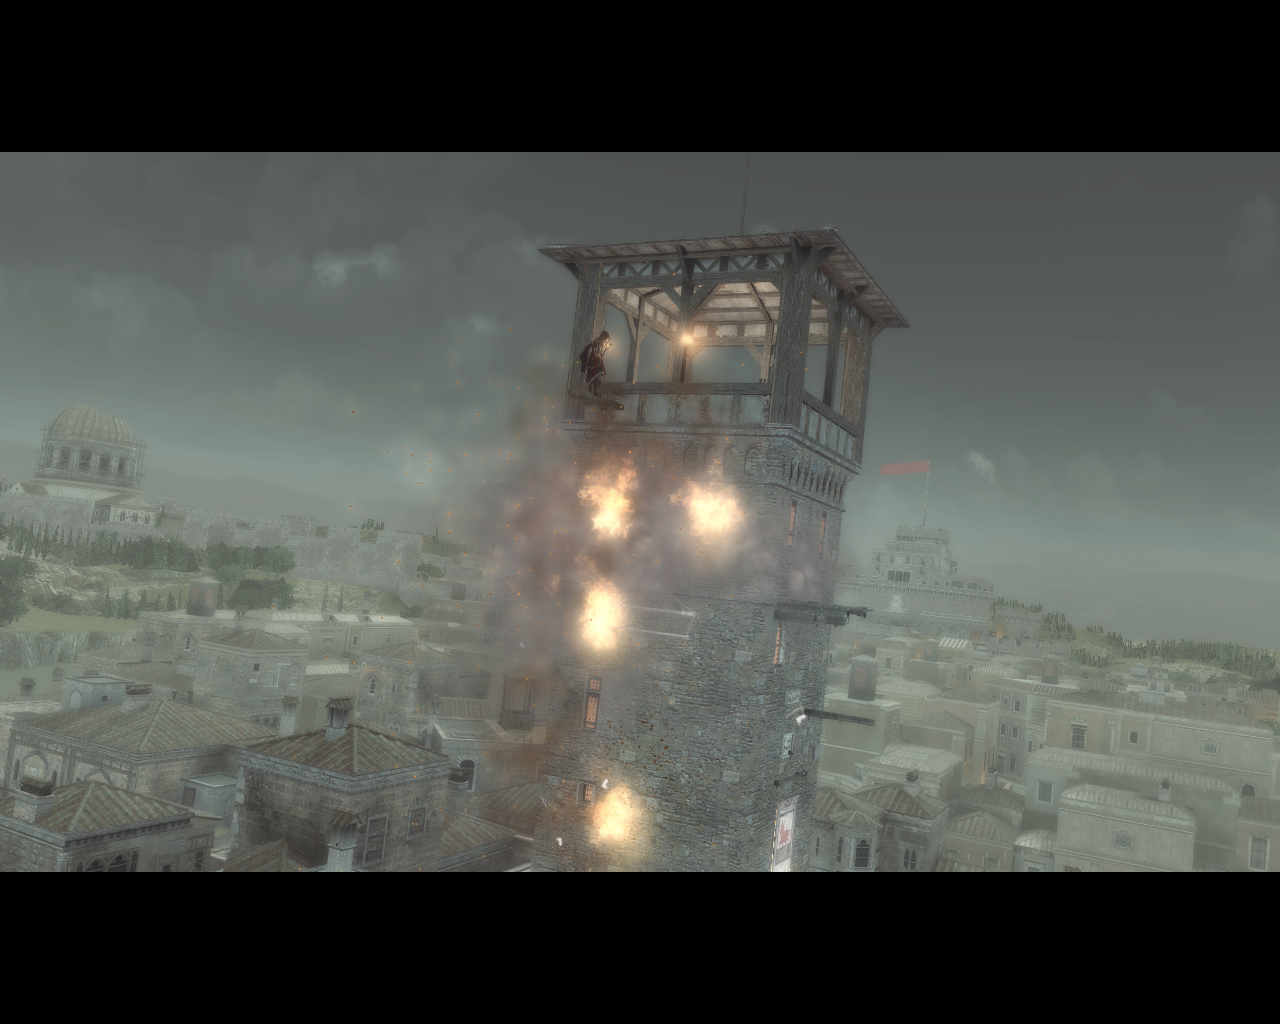 Assassin's Creed: Brotherhood Windows Burning down the towers to diminish Borgia's influence over Rome